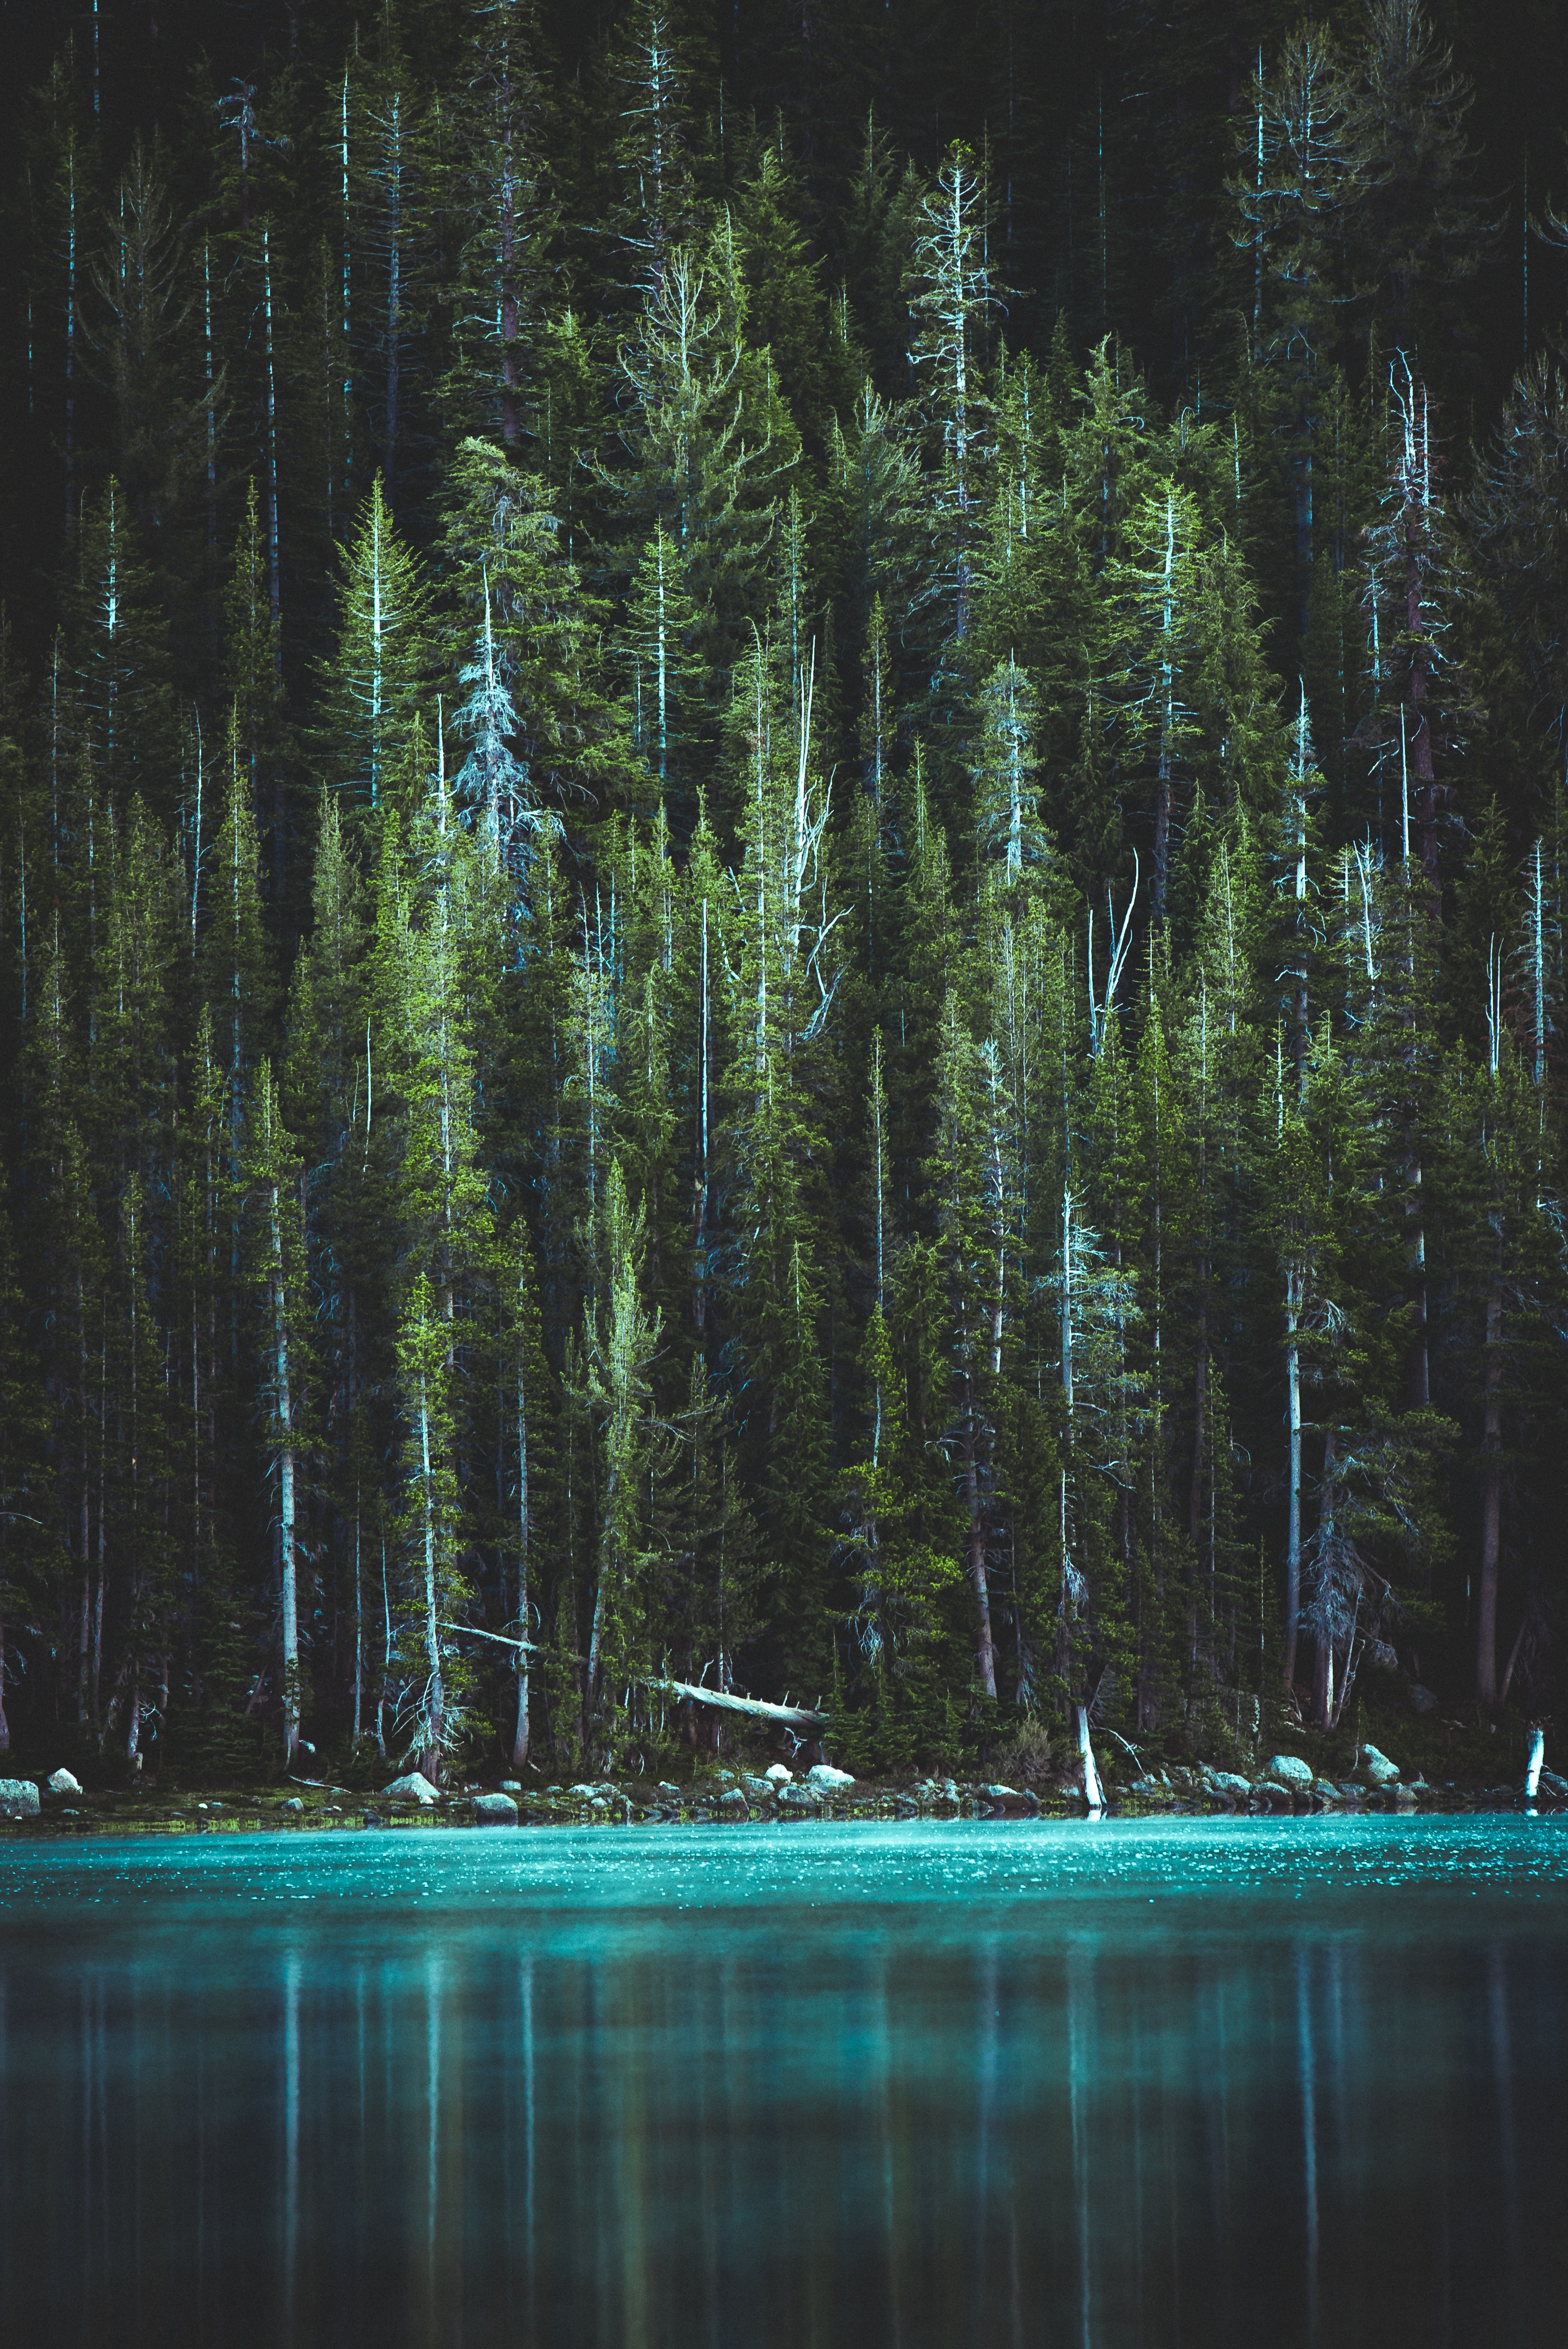 Pine Trees And Blue Lake Green Wallpaper 4k Iphone 3654x5473 Download Hd Wallpaper Wallpapertip